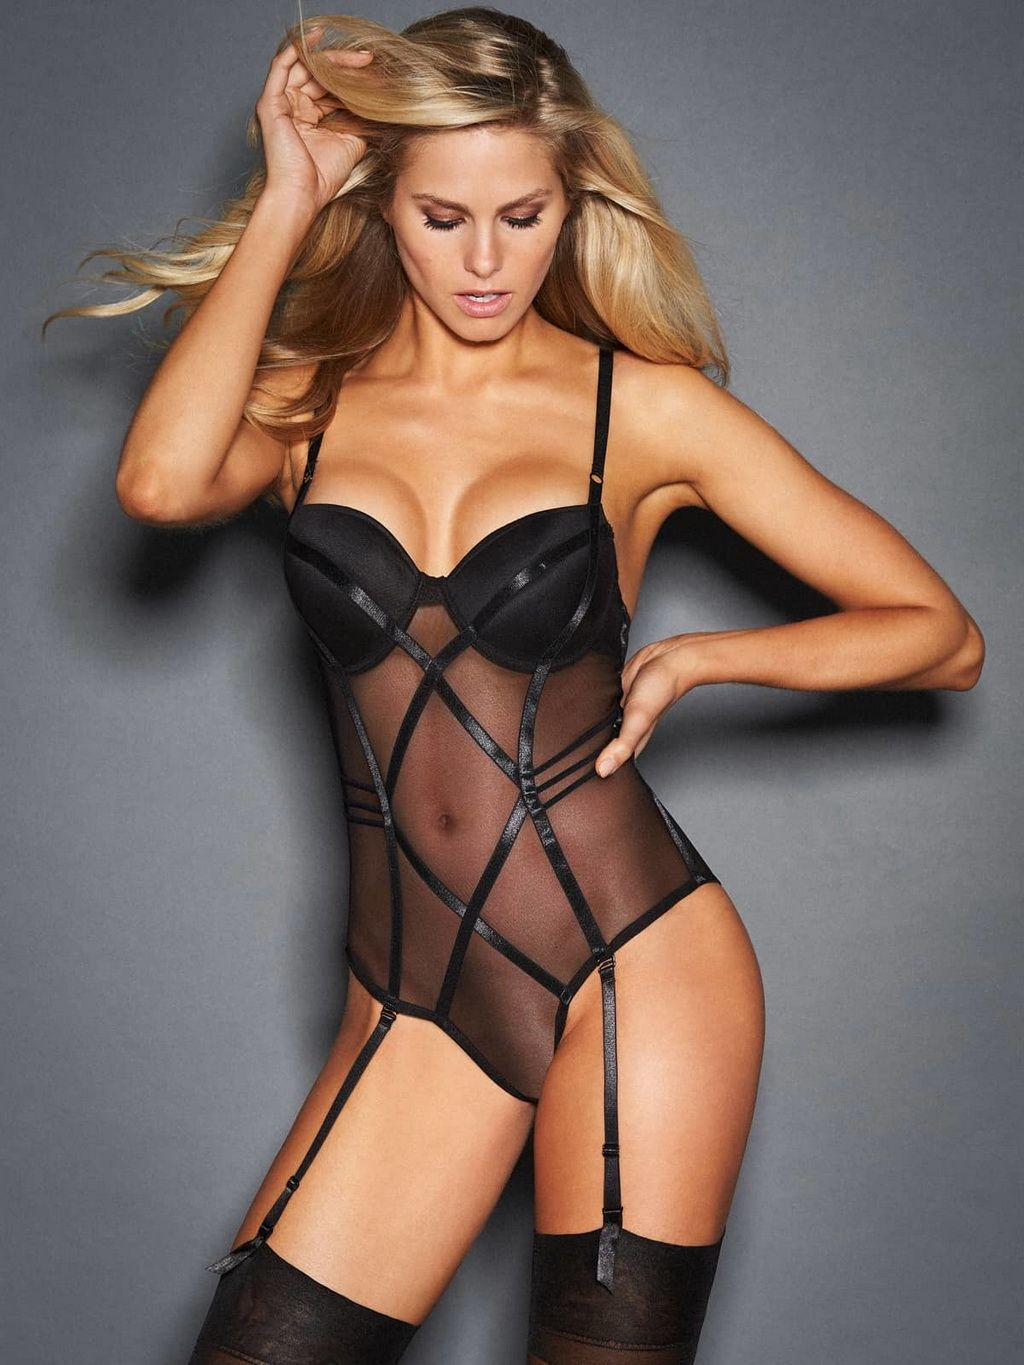 Images Natalie Jayne Roser nudes (33 foto and video), Sexy, Paparazzi, Instagram, see through 2006